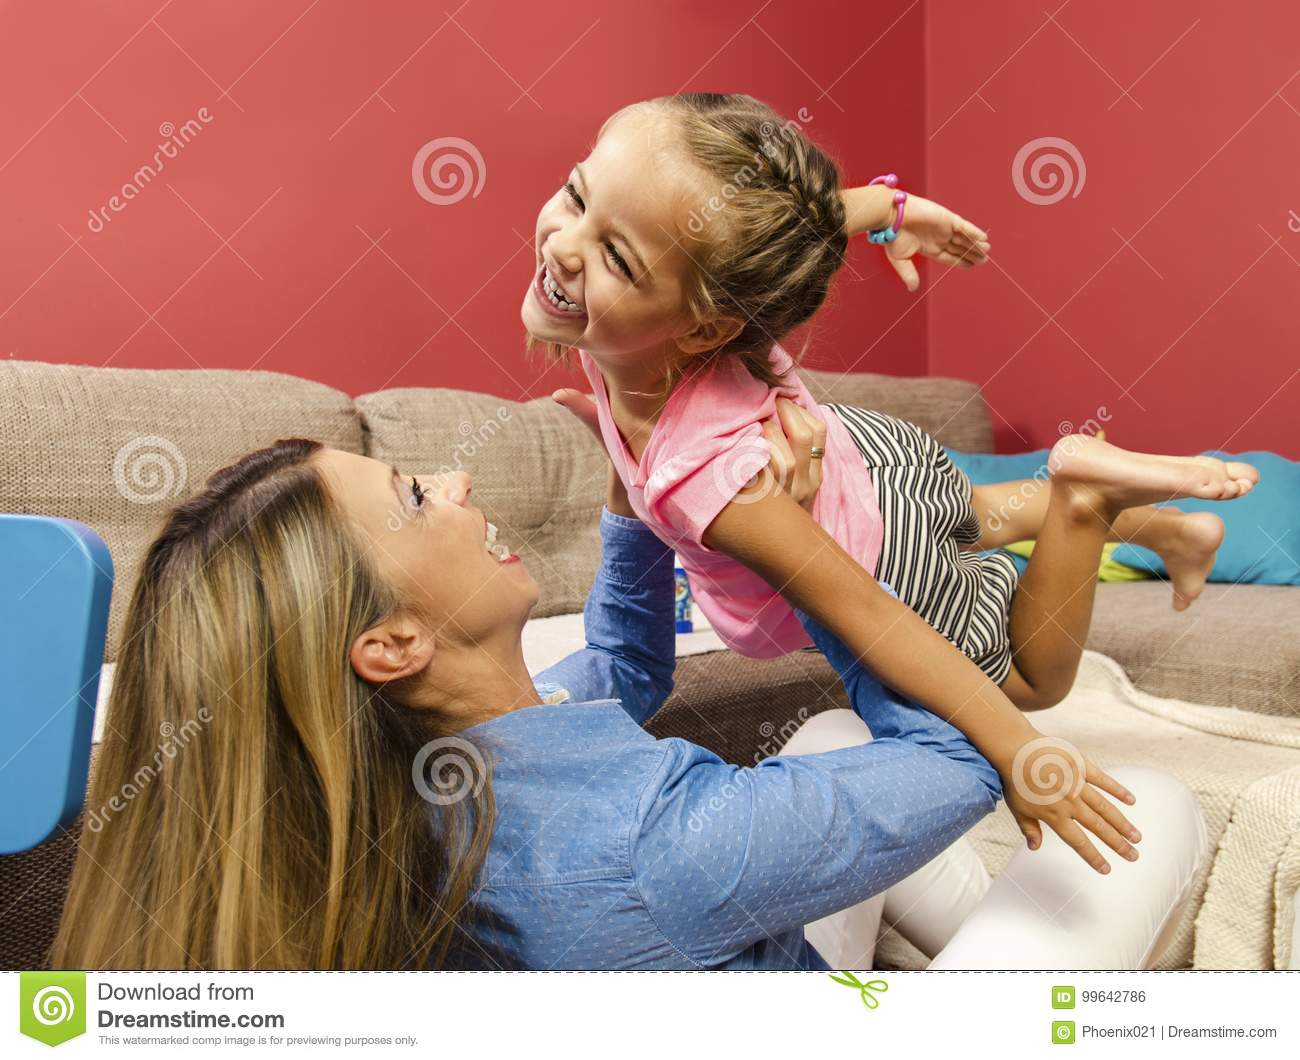 Adorable happy little girl flying throw air in her mothers arms